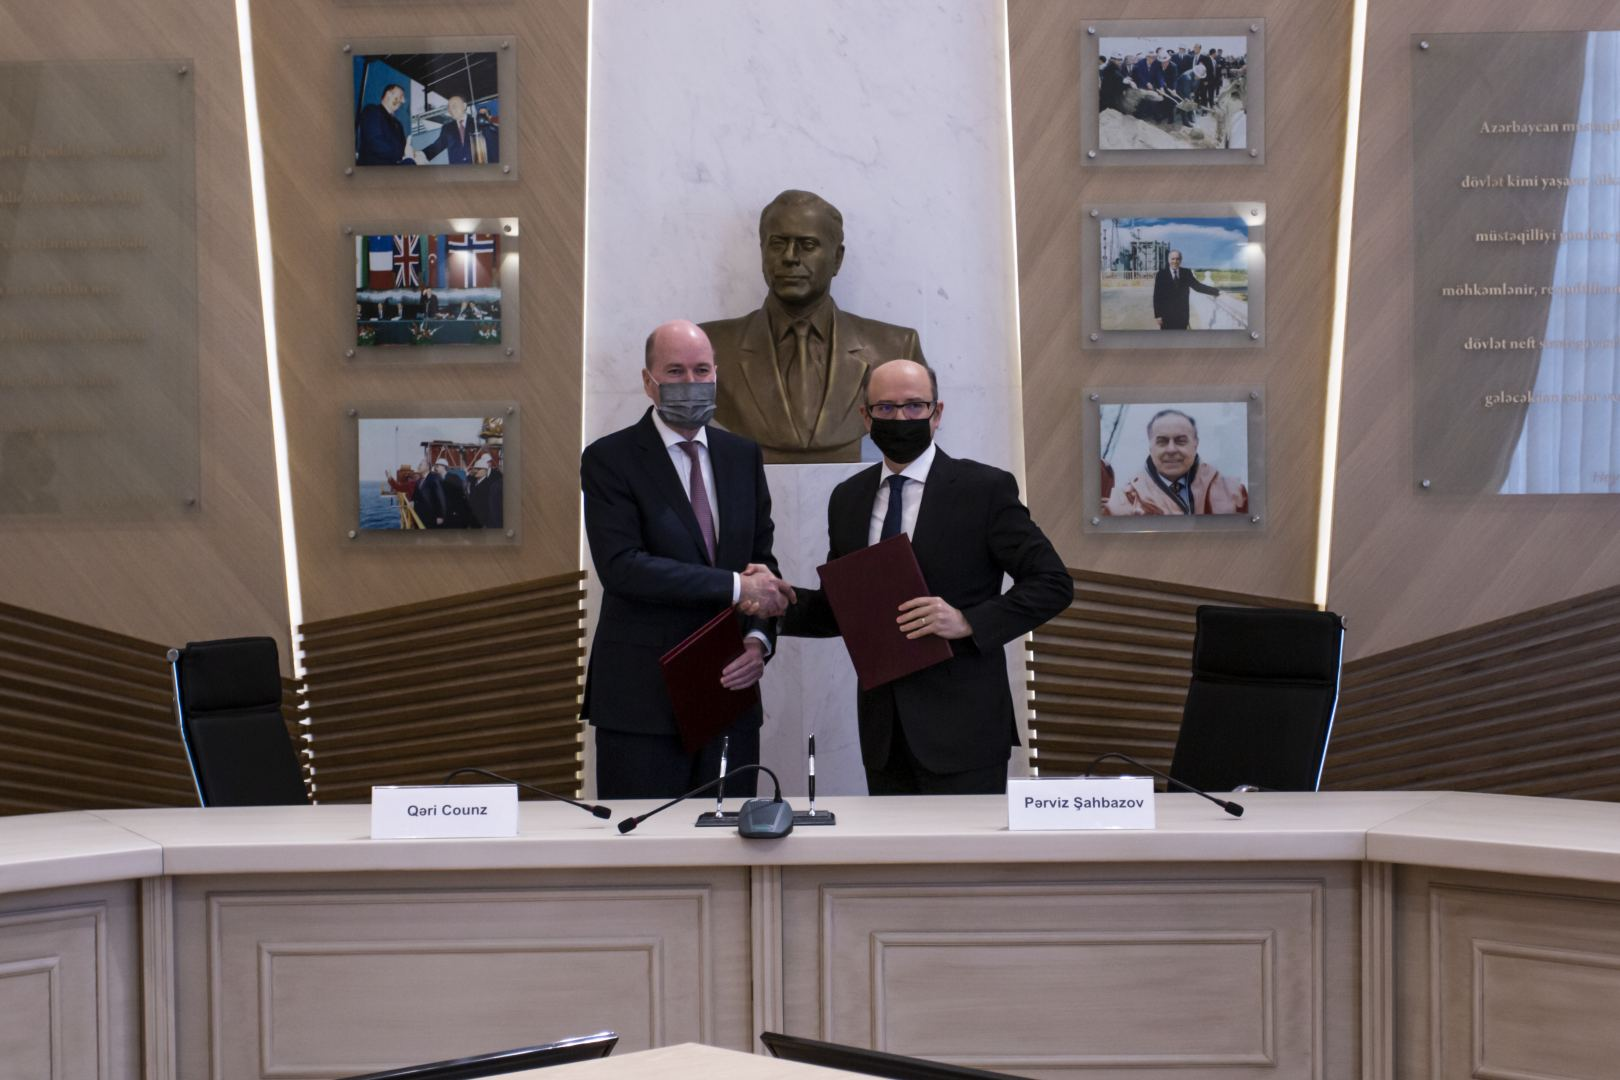 BP, Azerbaijan To Co-Op On Decarbonization Of Energy, Mobility Systems